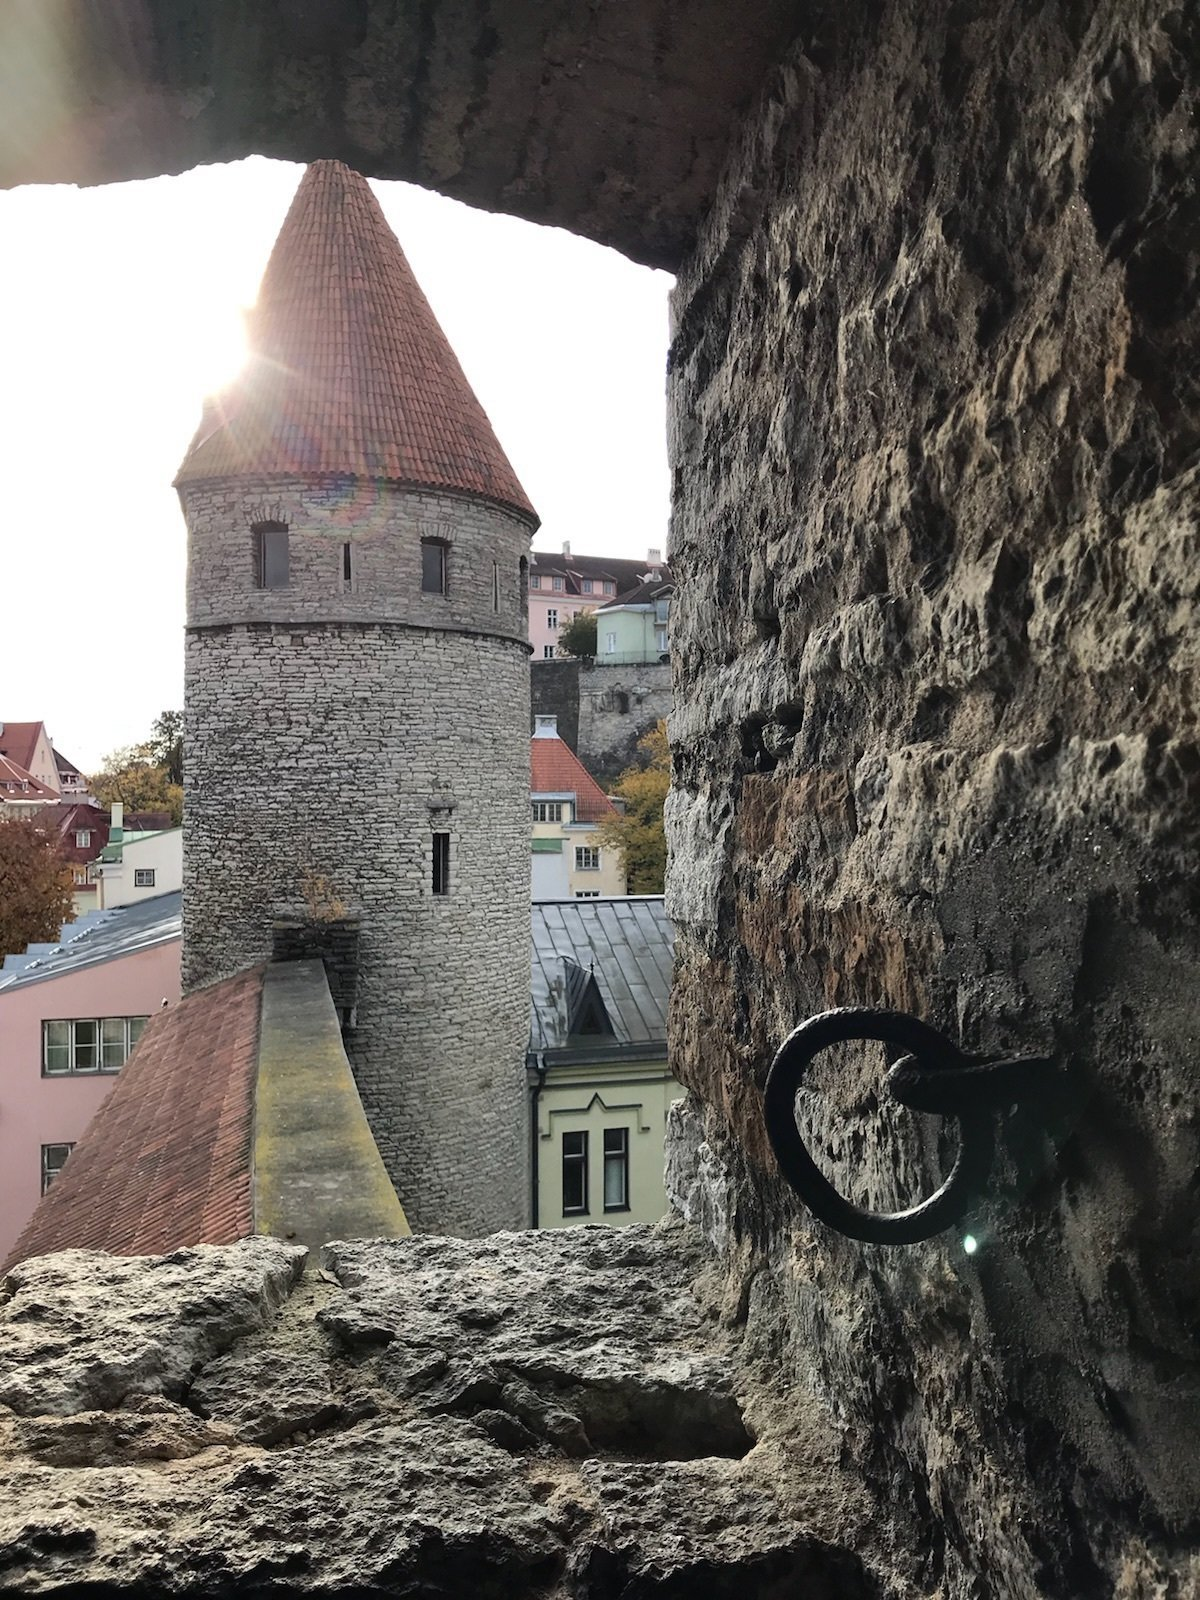 Only have one day in Tallinn? Click through for a guide on how to maximize your 24 hours in Tallinn. It includes the best things to do and eat in Tallinn!